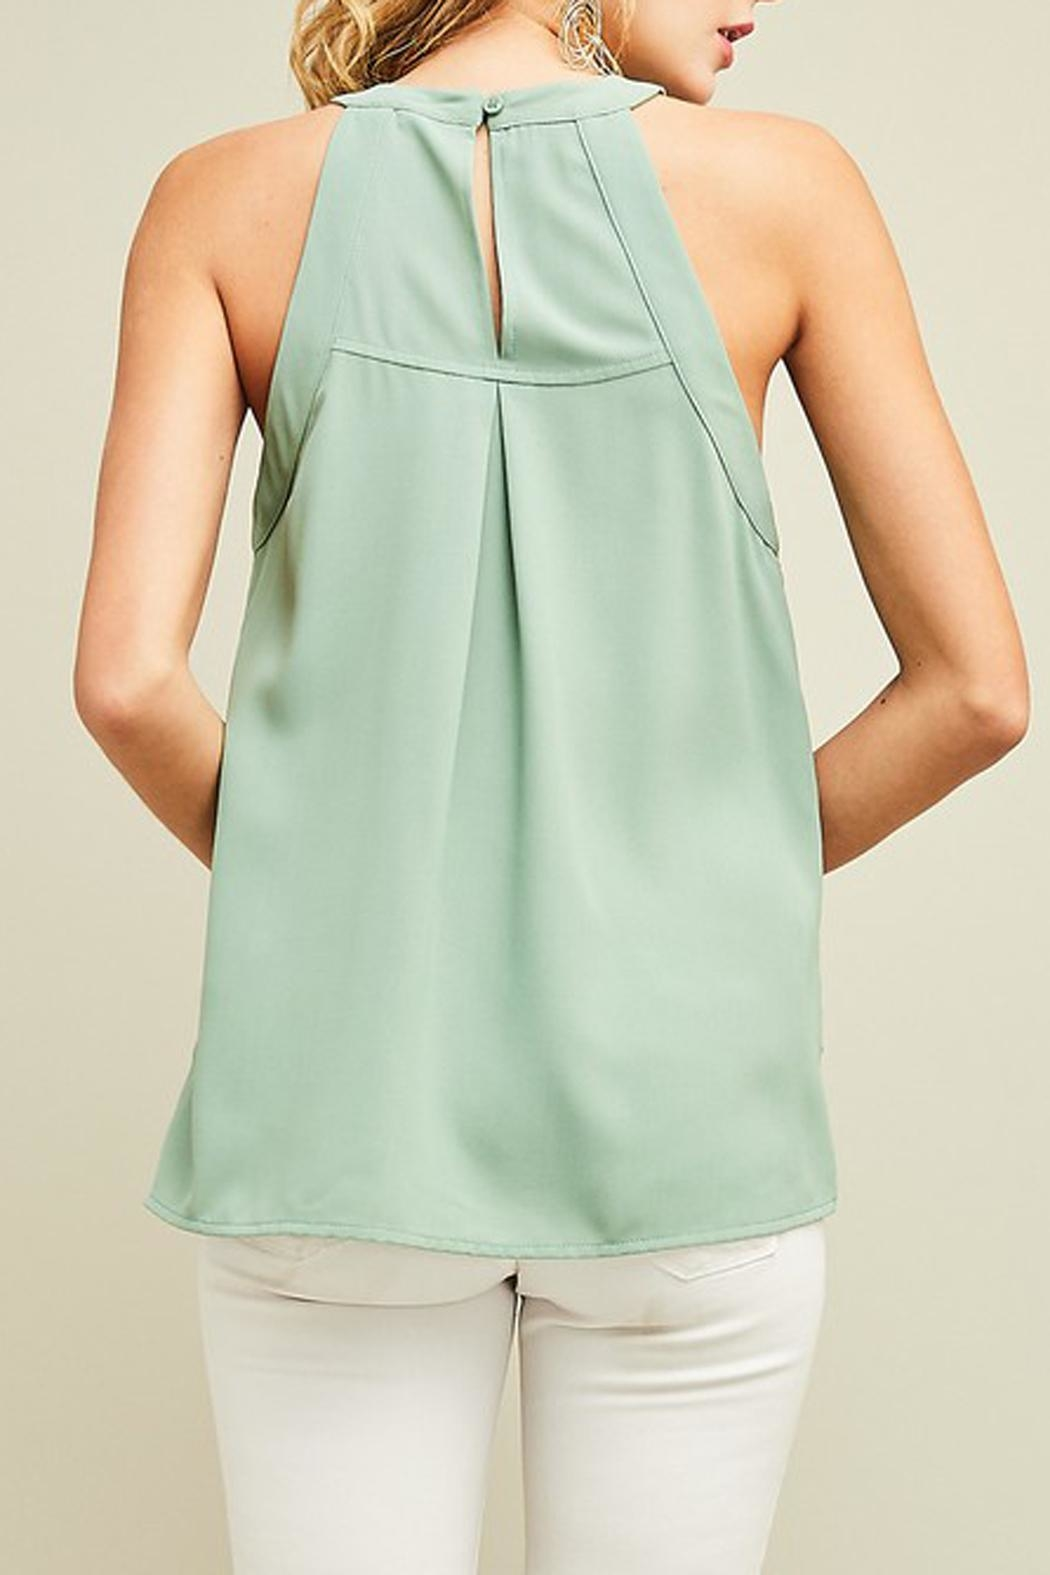 Entro Embroidered Mint Haltertop - Front Full Image